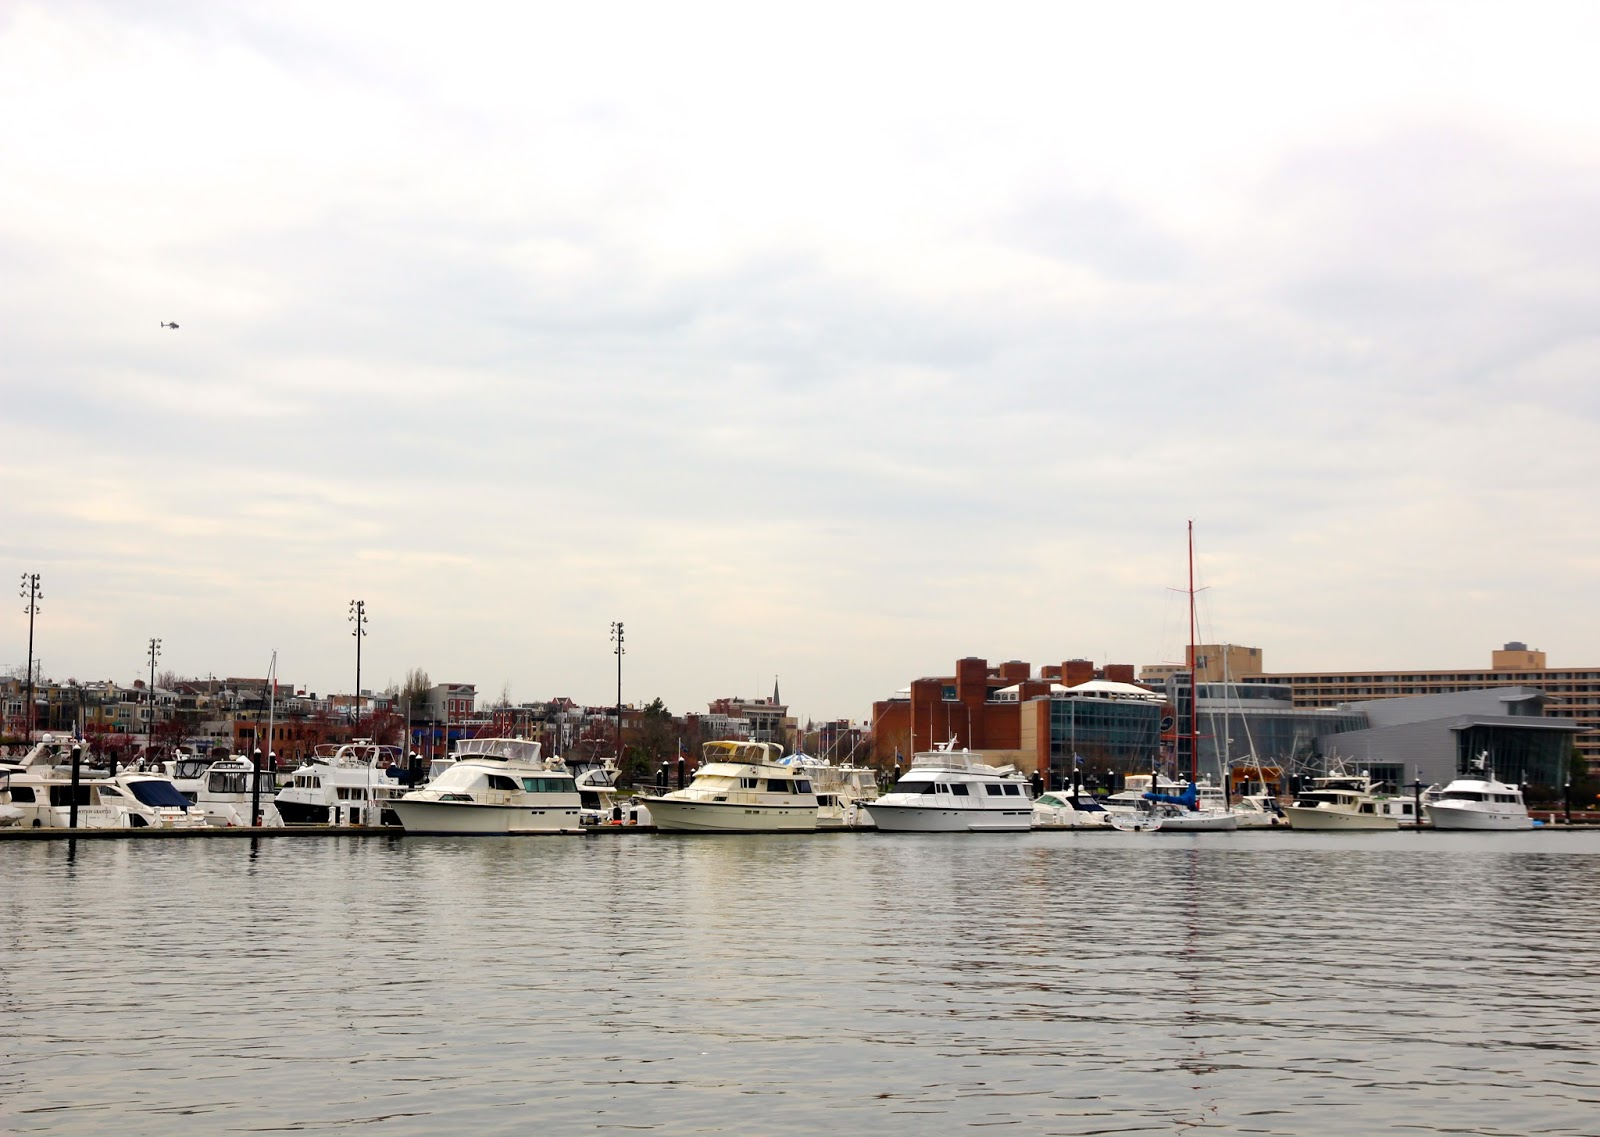 Travel Notes: Inner Harbor in Baltimore, MD